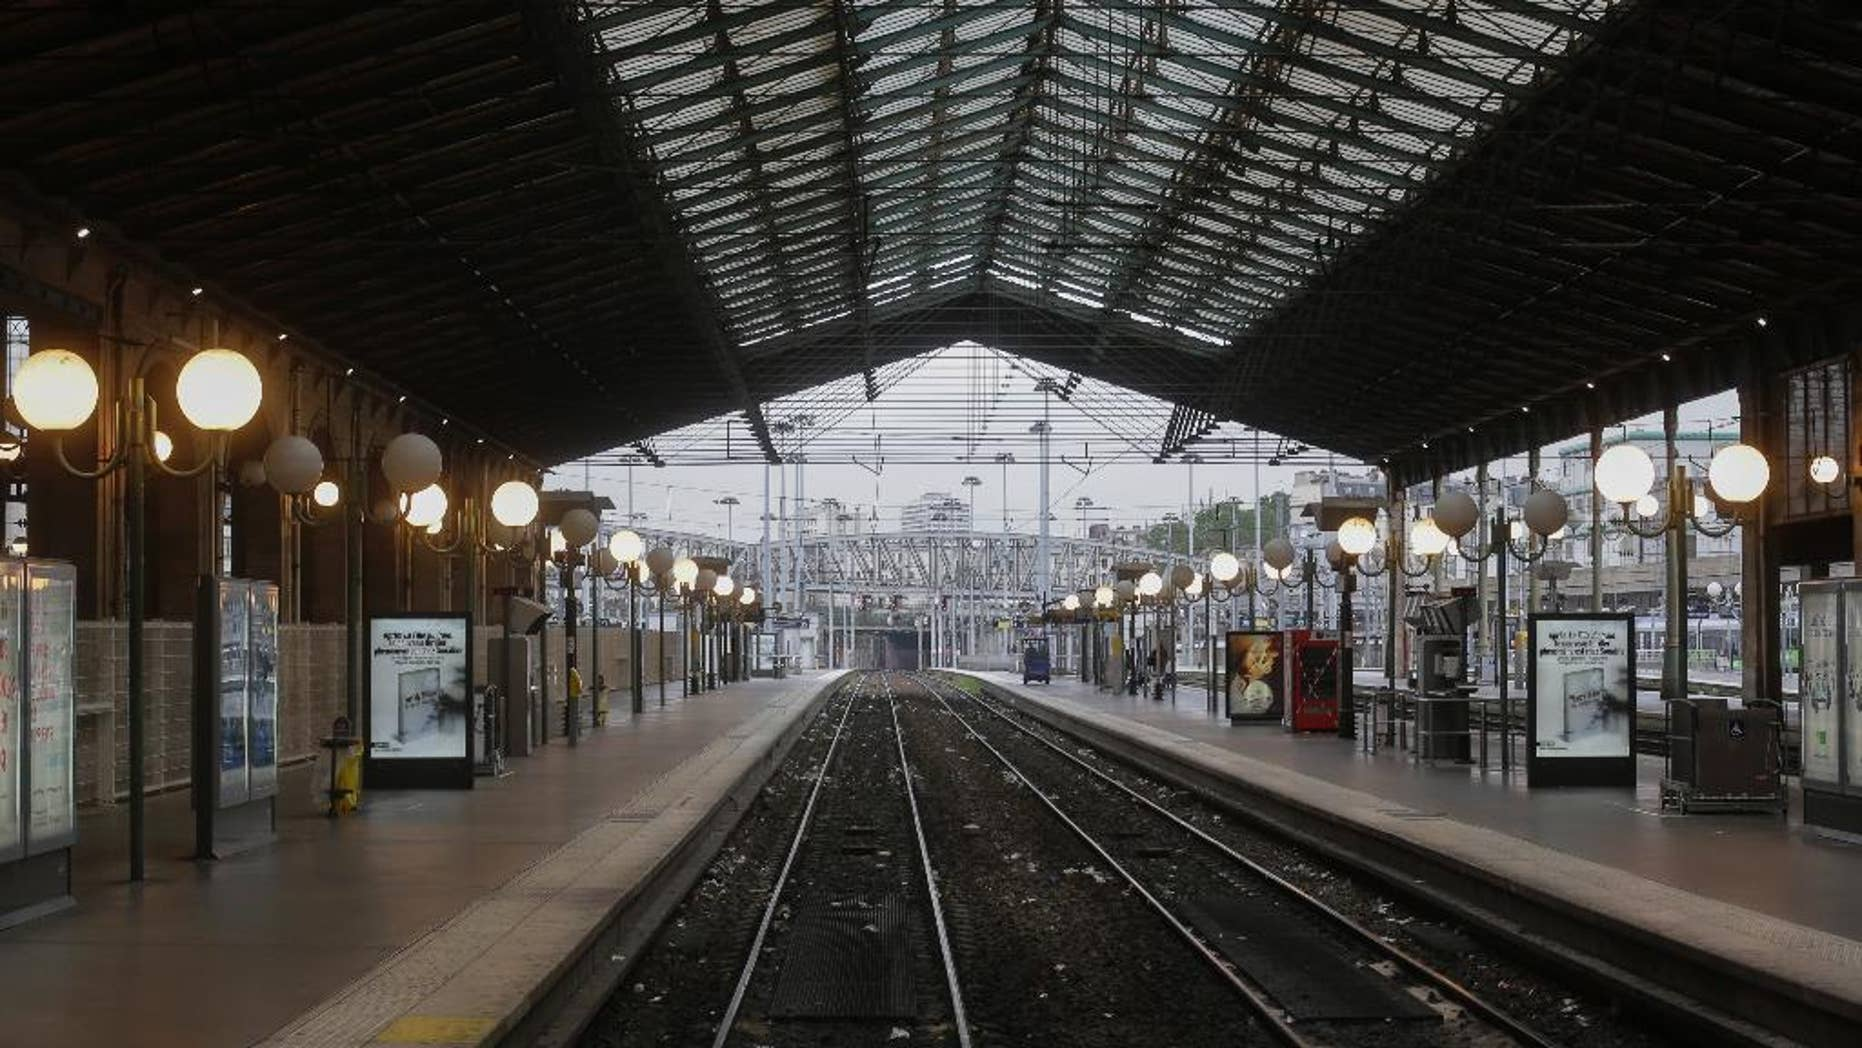 This image shows the Gare du Nord train station in Paris during a workers' strike June 2, 2016.